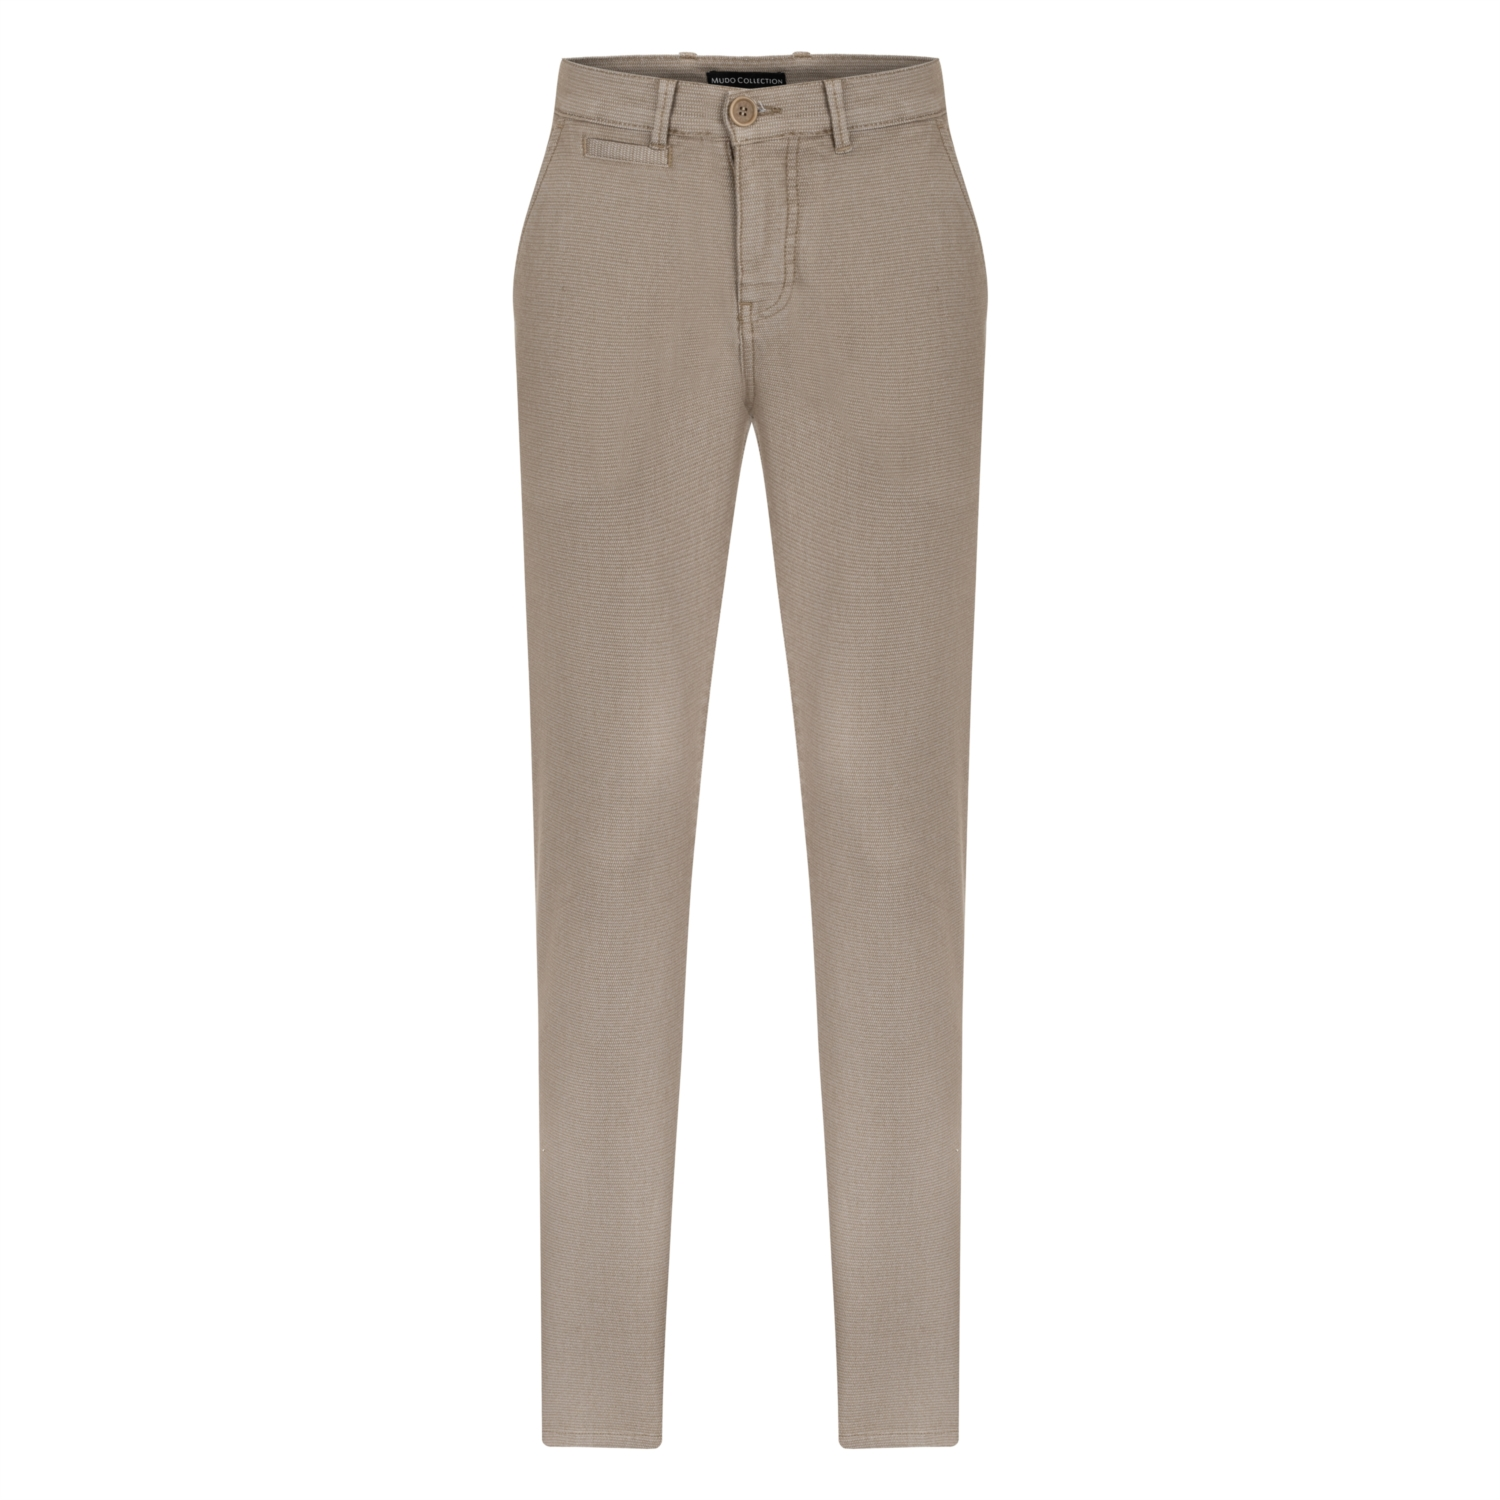 SUPER SLIM PAMUKLU CHINO PANTOLON